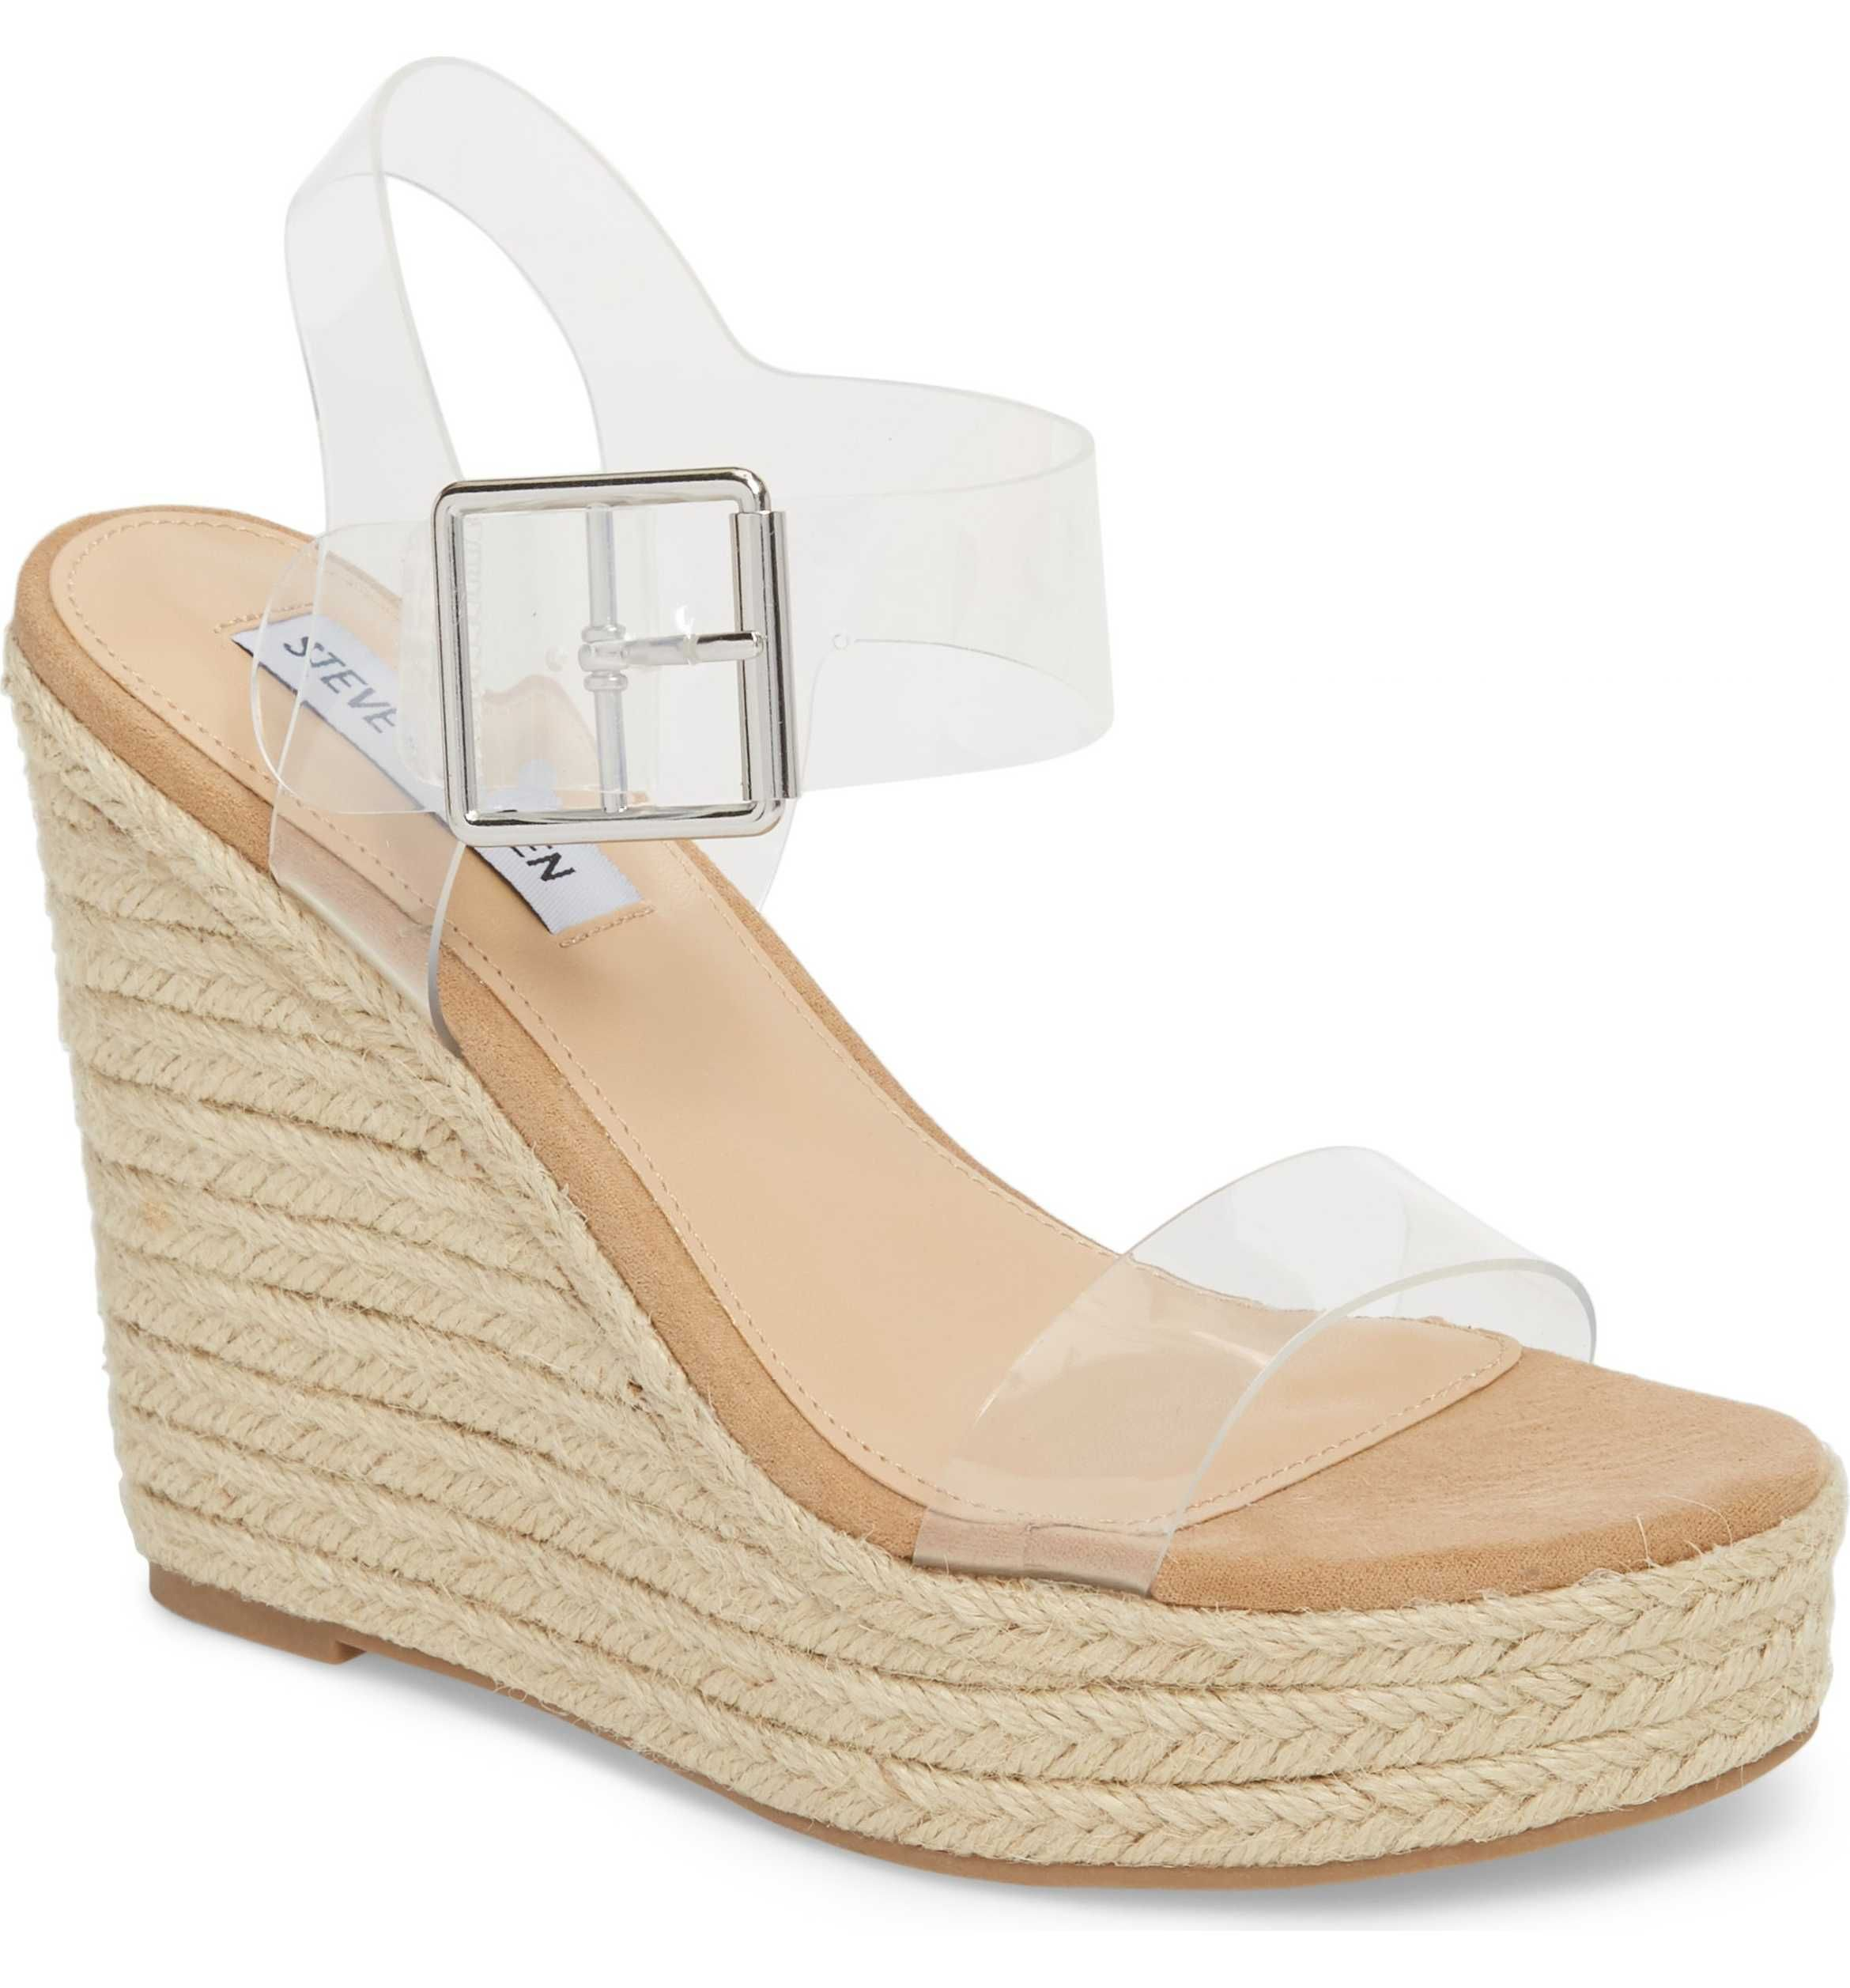 4fe1047fb078 Main Image - Steve Madden Splash Transparent Strap Wedge Sandal (Women)